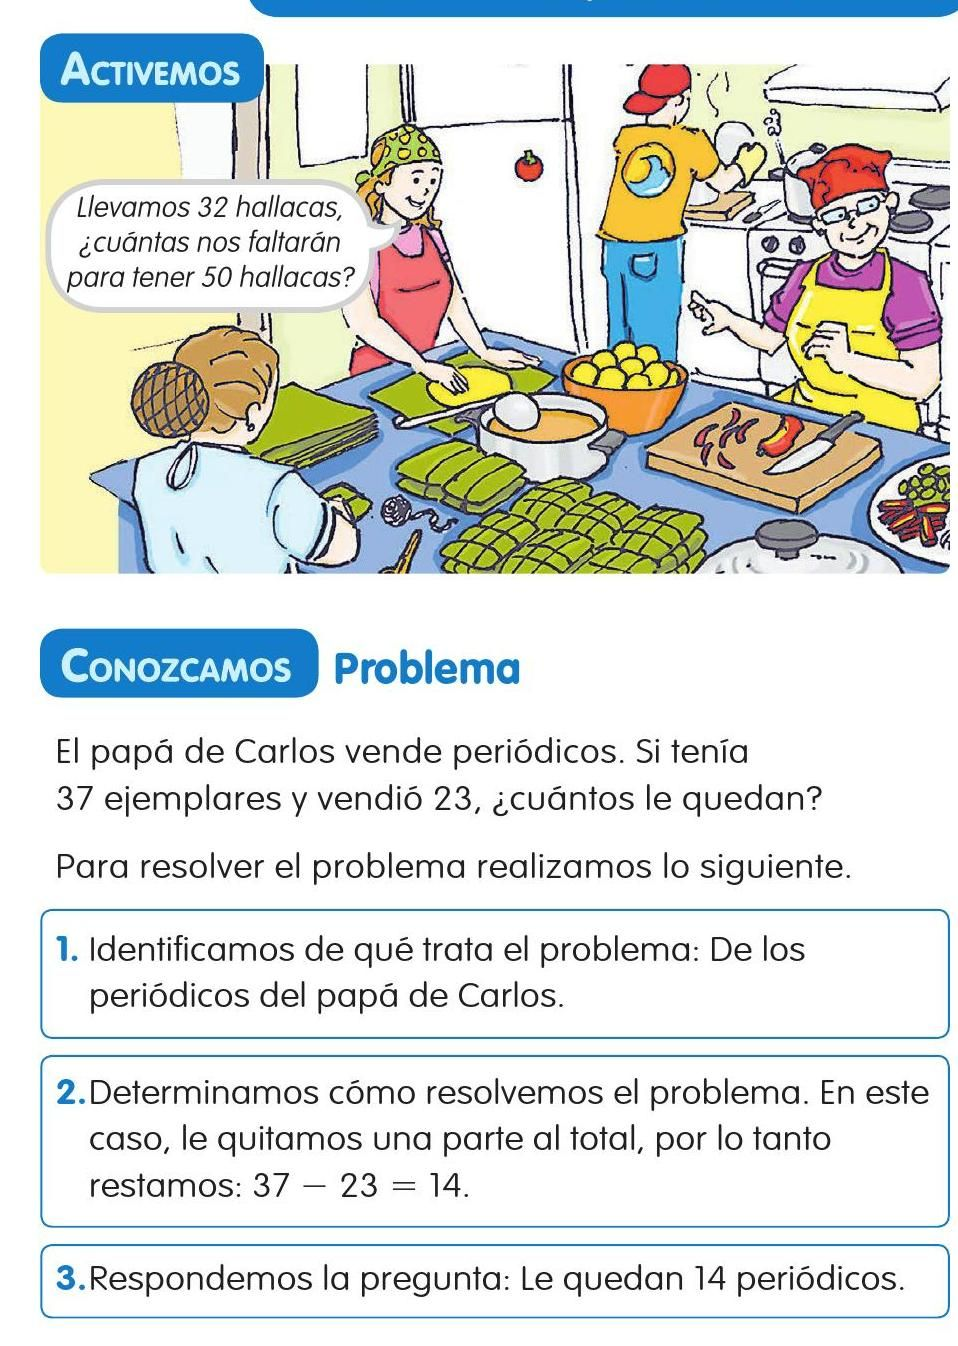 #ClippedOnIssuu from Enciclopedia Didáctica 1